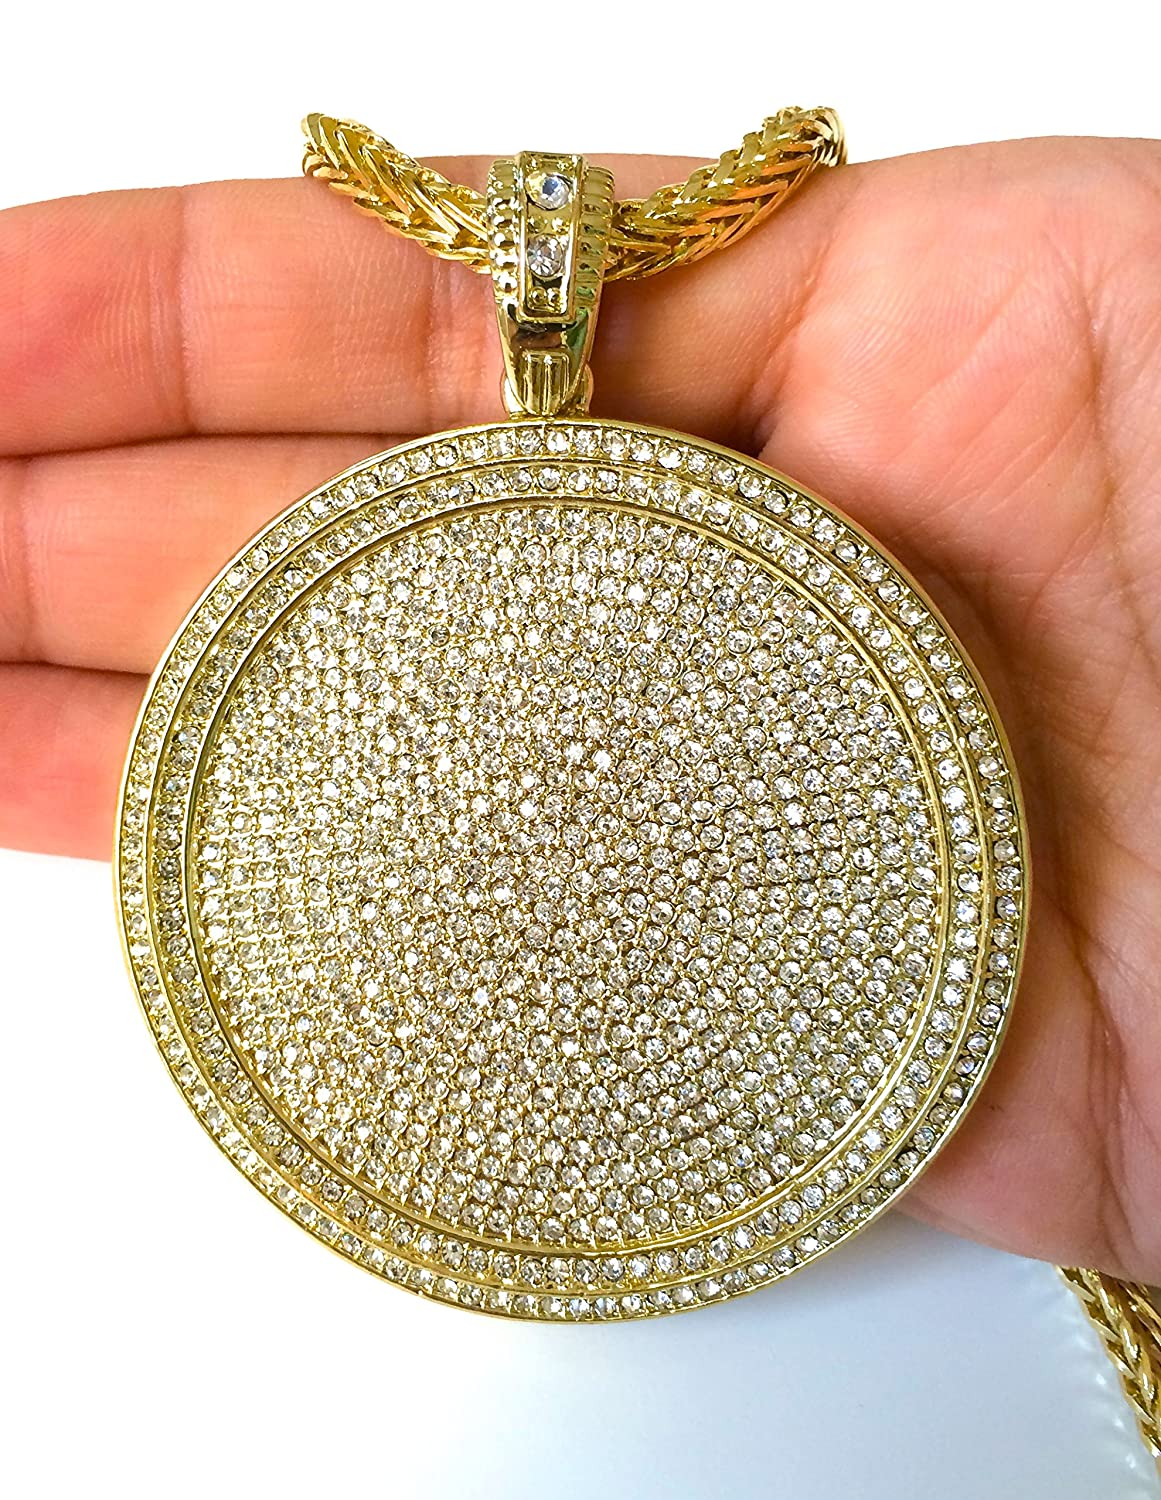 index necklace gsp pendant framed diamond stainless steel medallion with chain